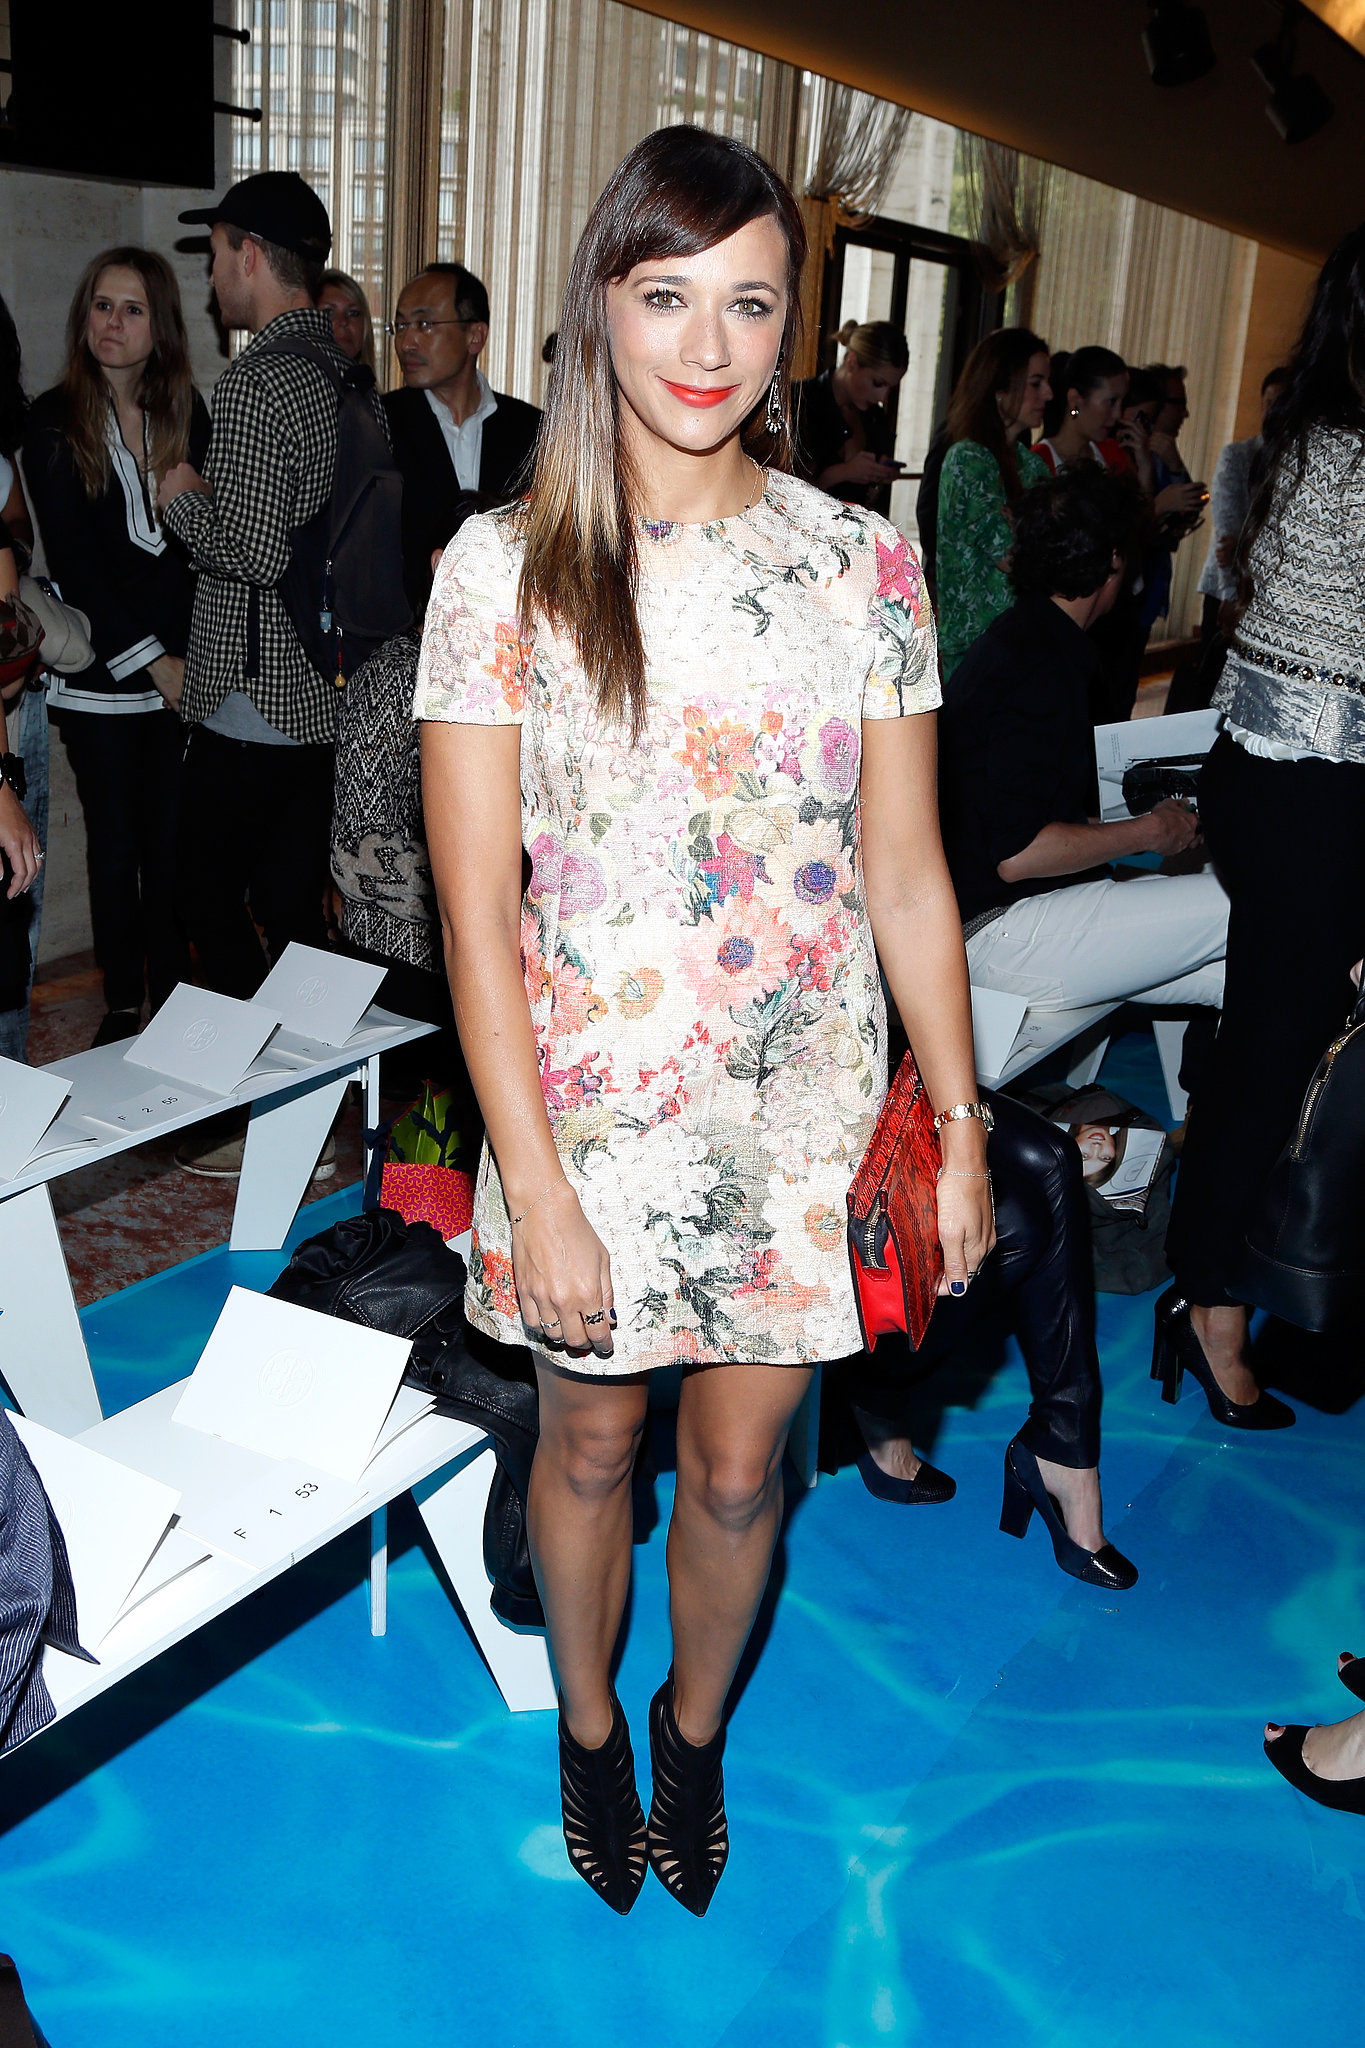 Rashida Jones dressed in a happy floral Tory Burch minidress and caged booties at the designer's Spring 2014 show.